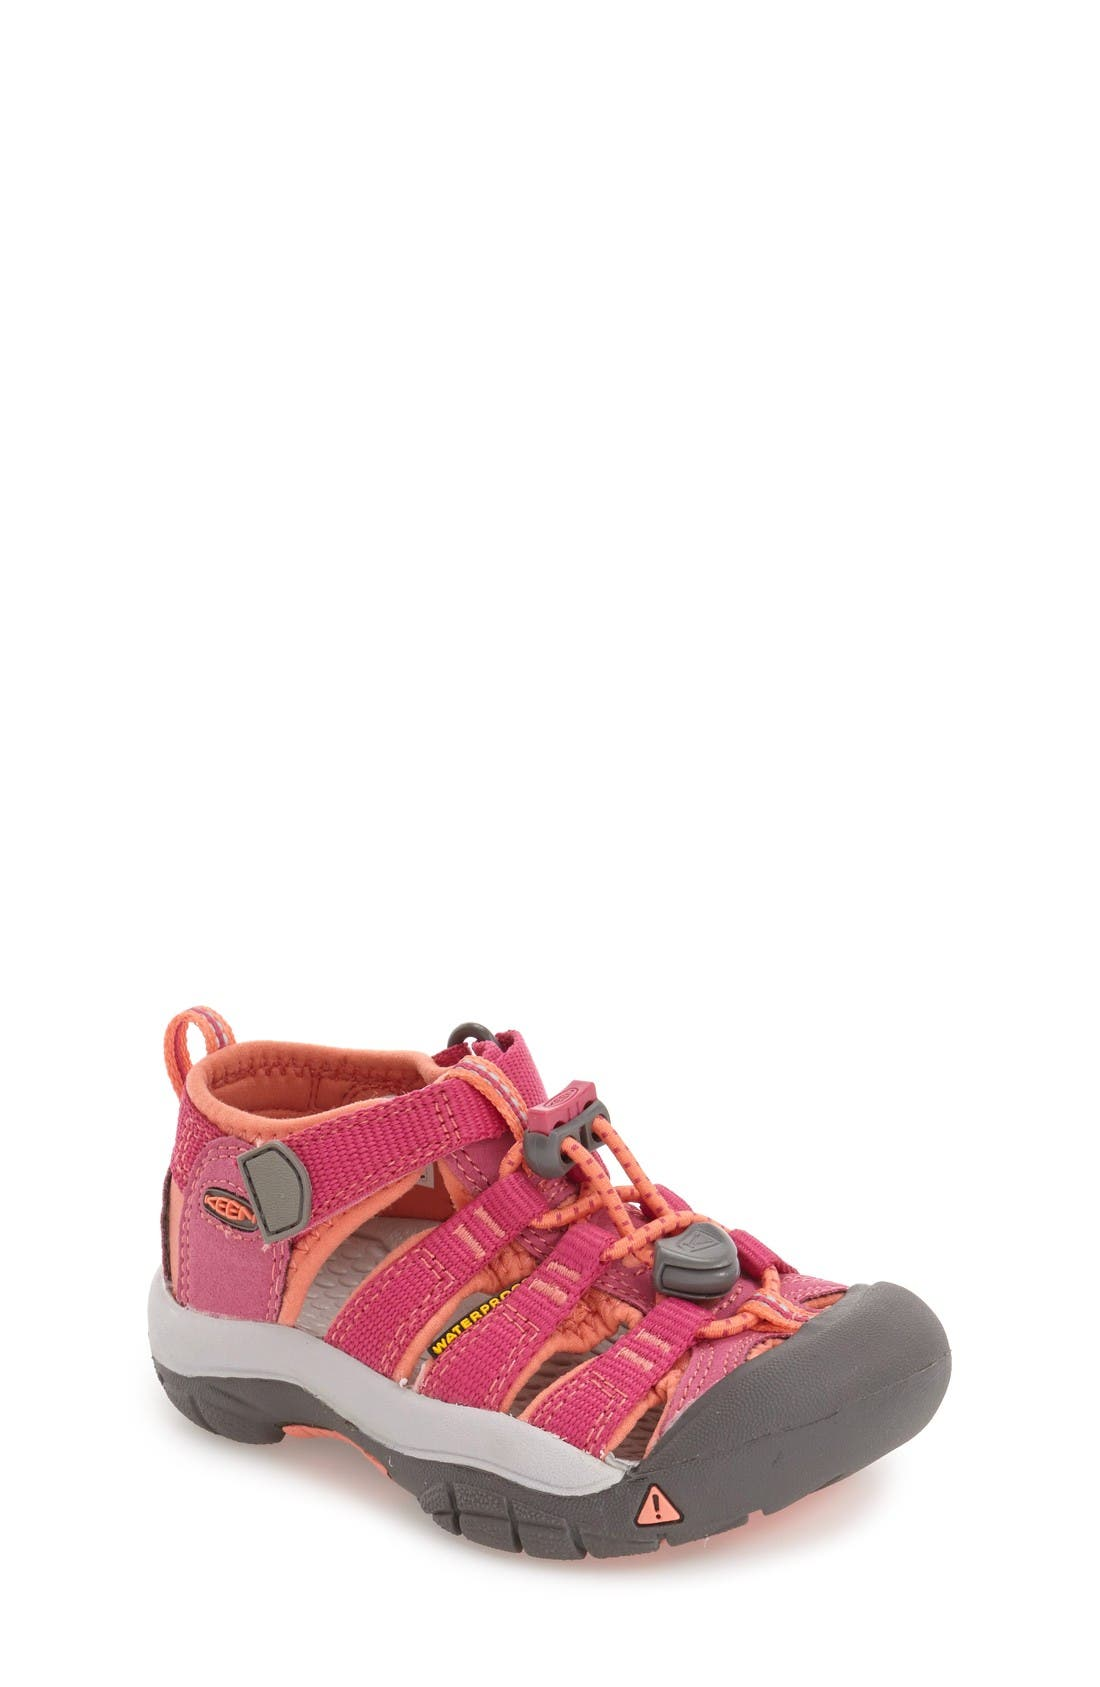 Alternate Image 1 Selected - Keen Newport H2 Water Friendly Sandal (Baby, Walker, Toddler, Little Kid & Big Kid)